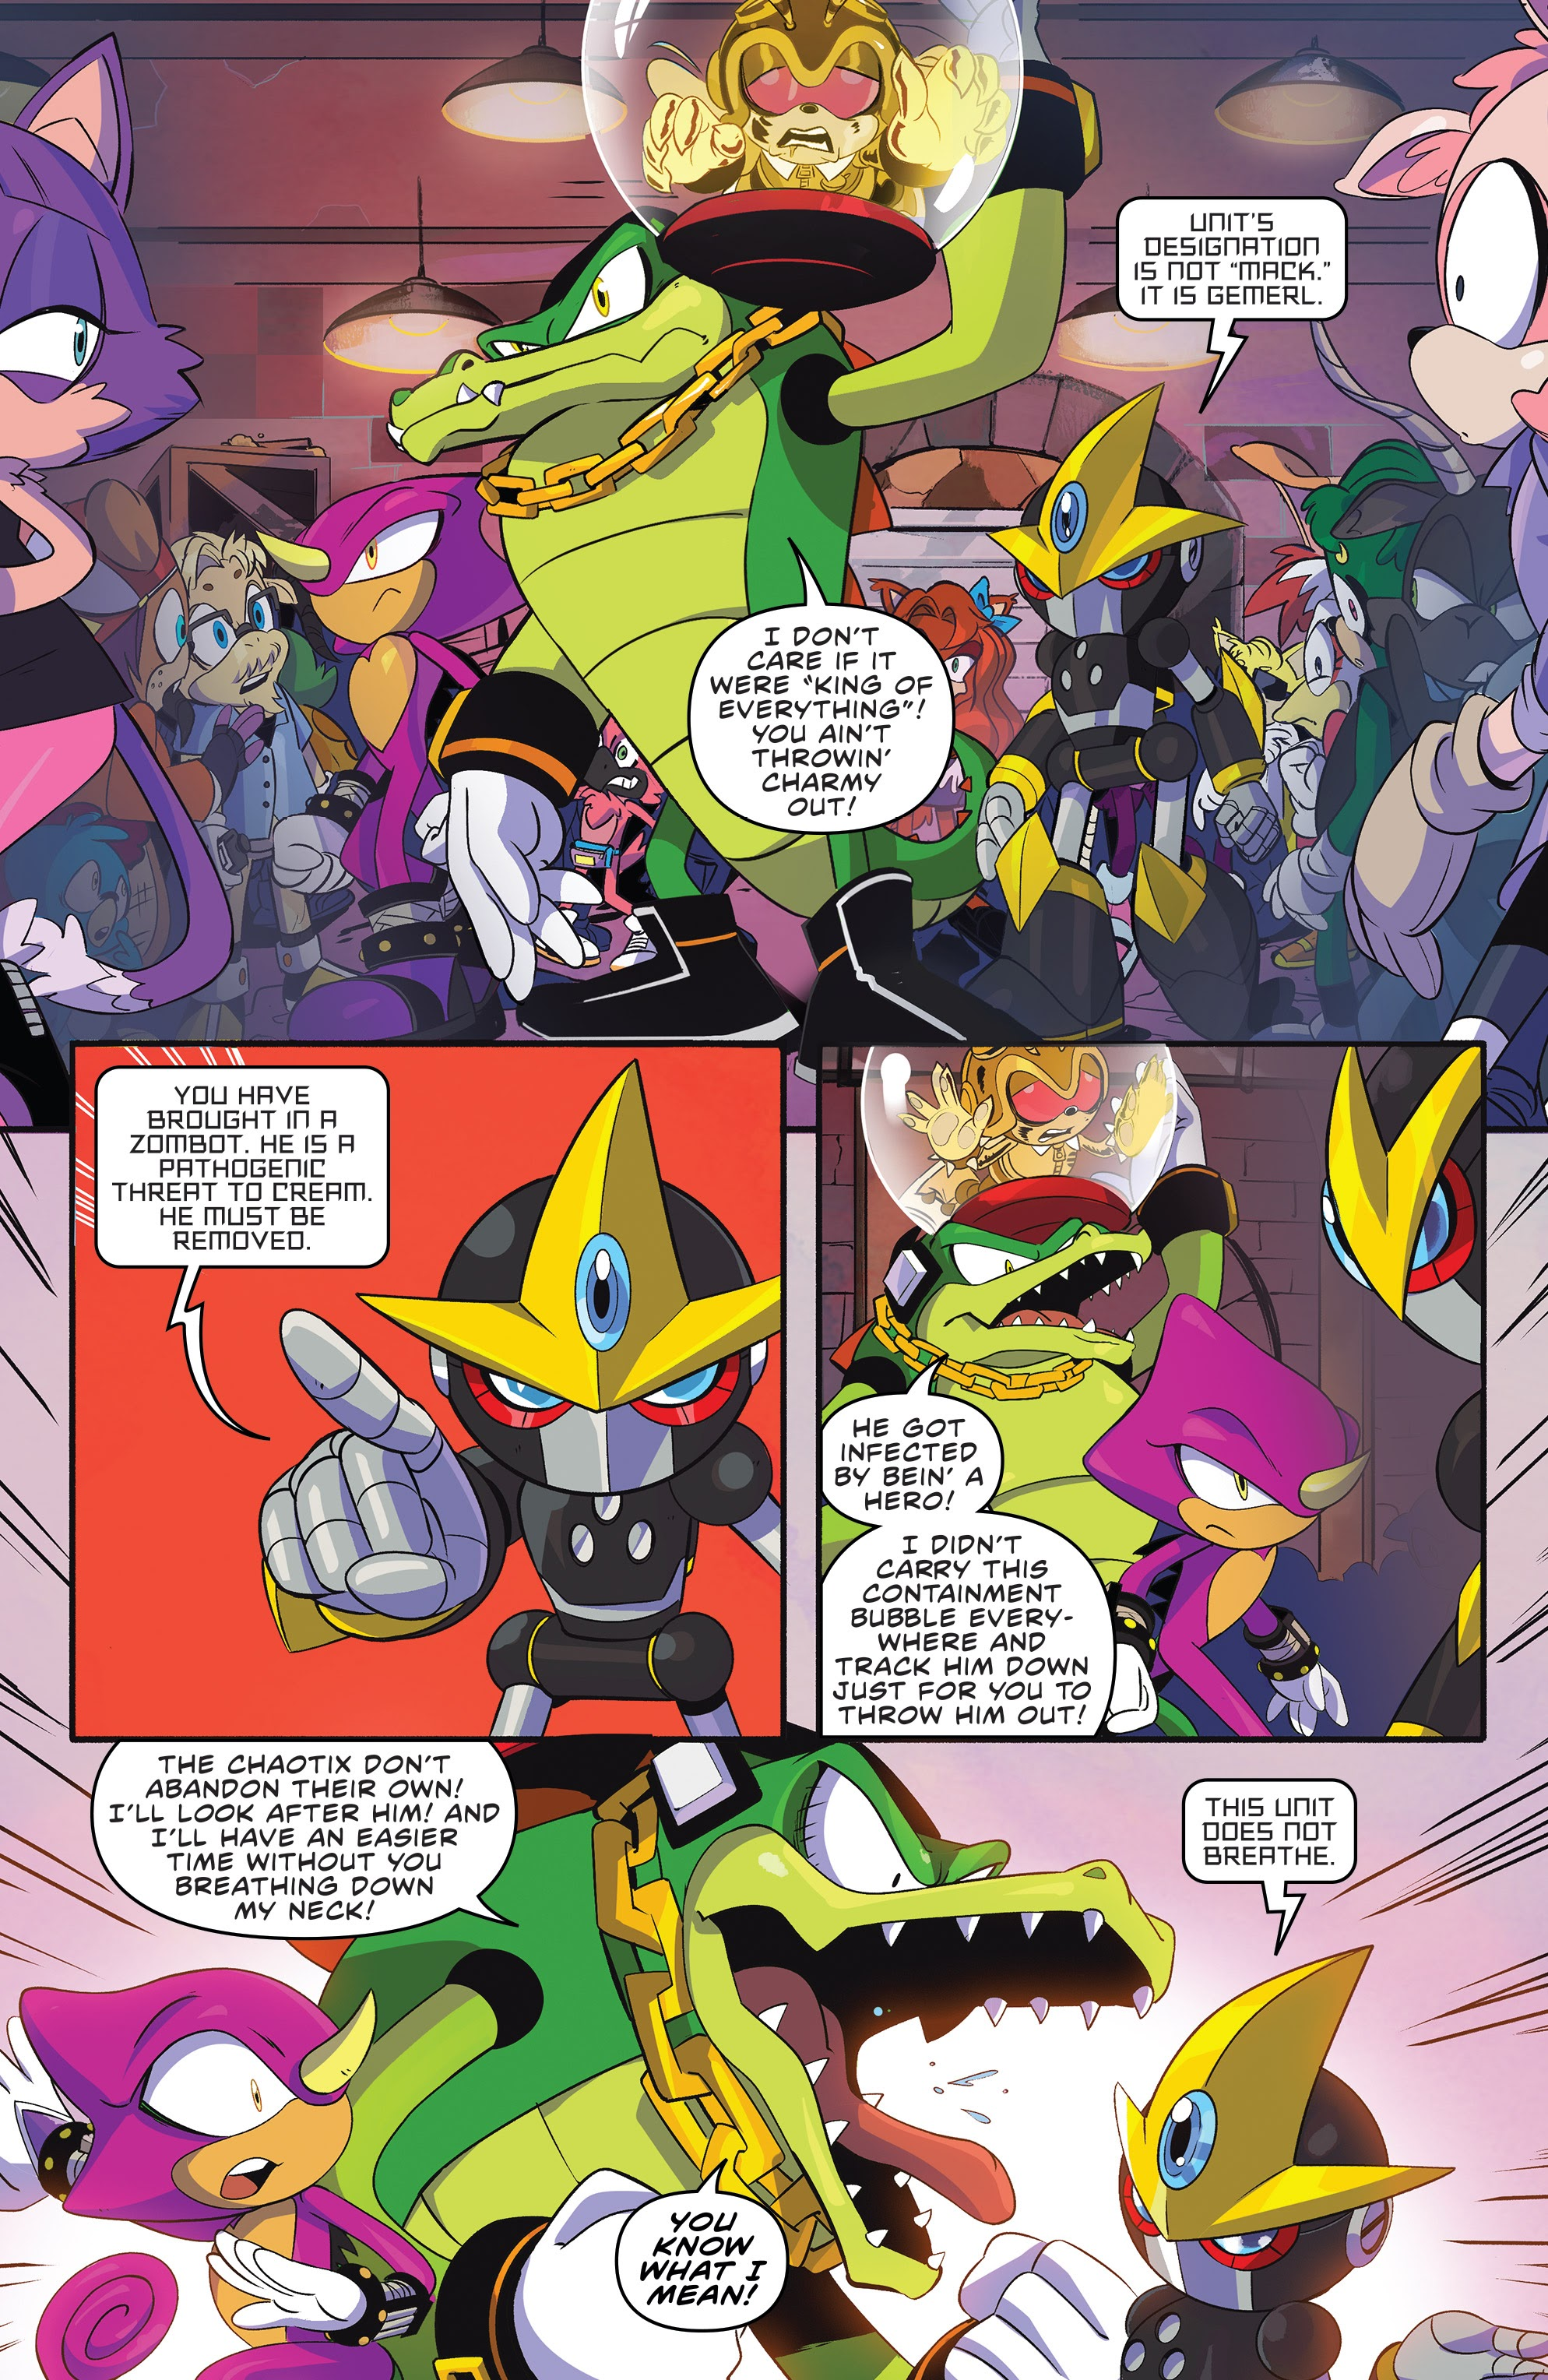 Sonic The Hedgehog 2018 22 Read Sonic The Hedgehog 2018 Issue 22 Online Full Page